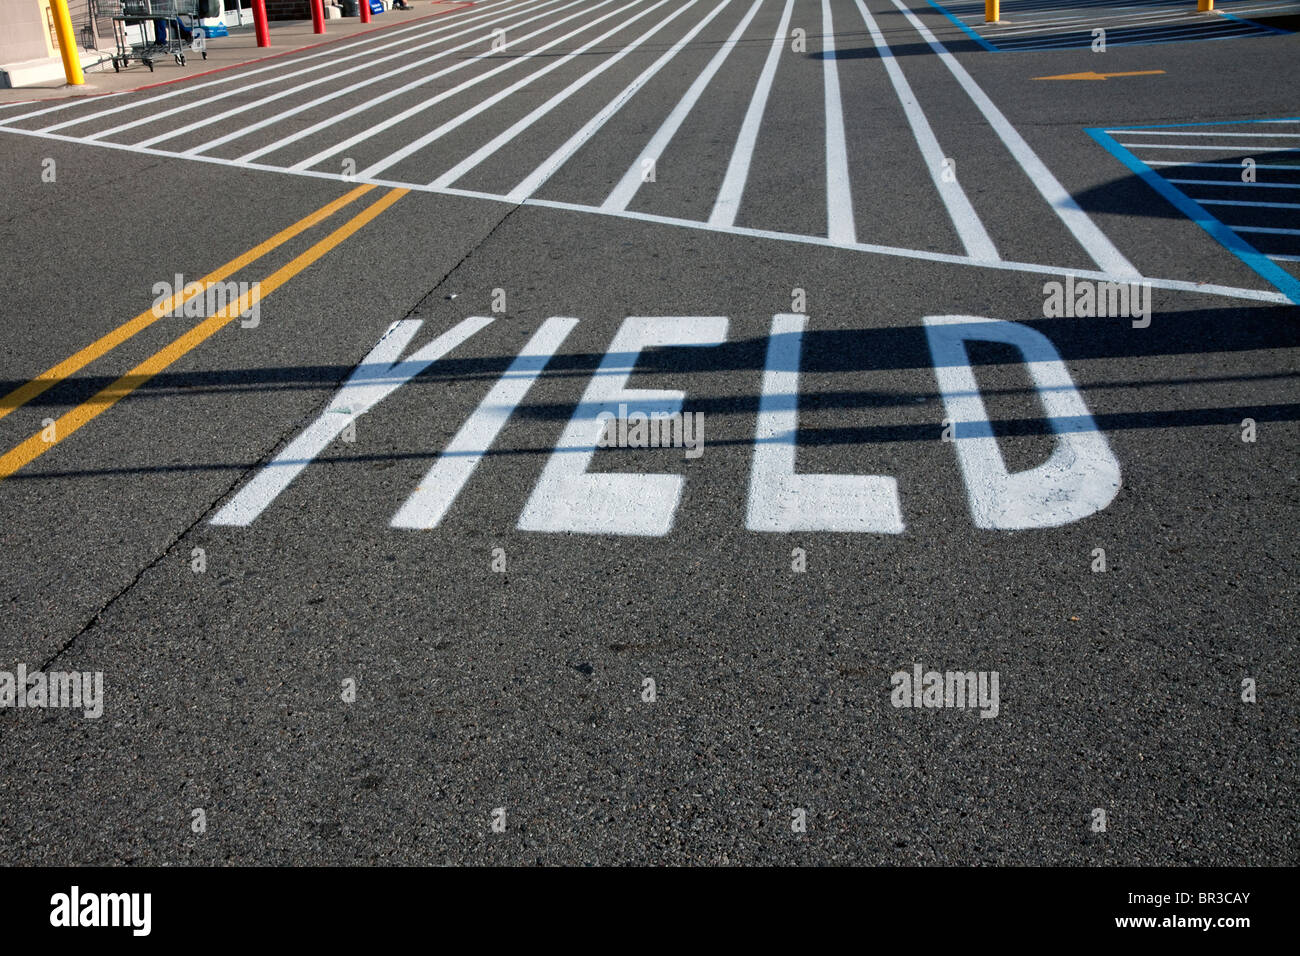 Yield sign painted on the road USA - Stock Image